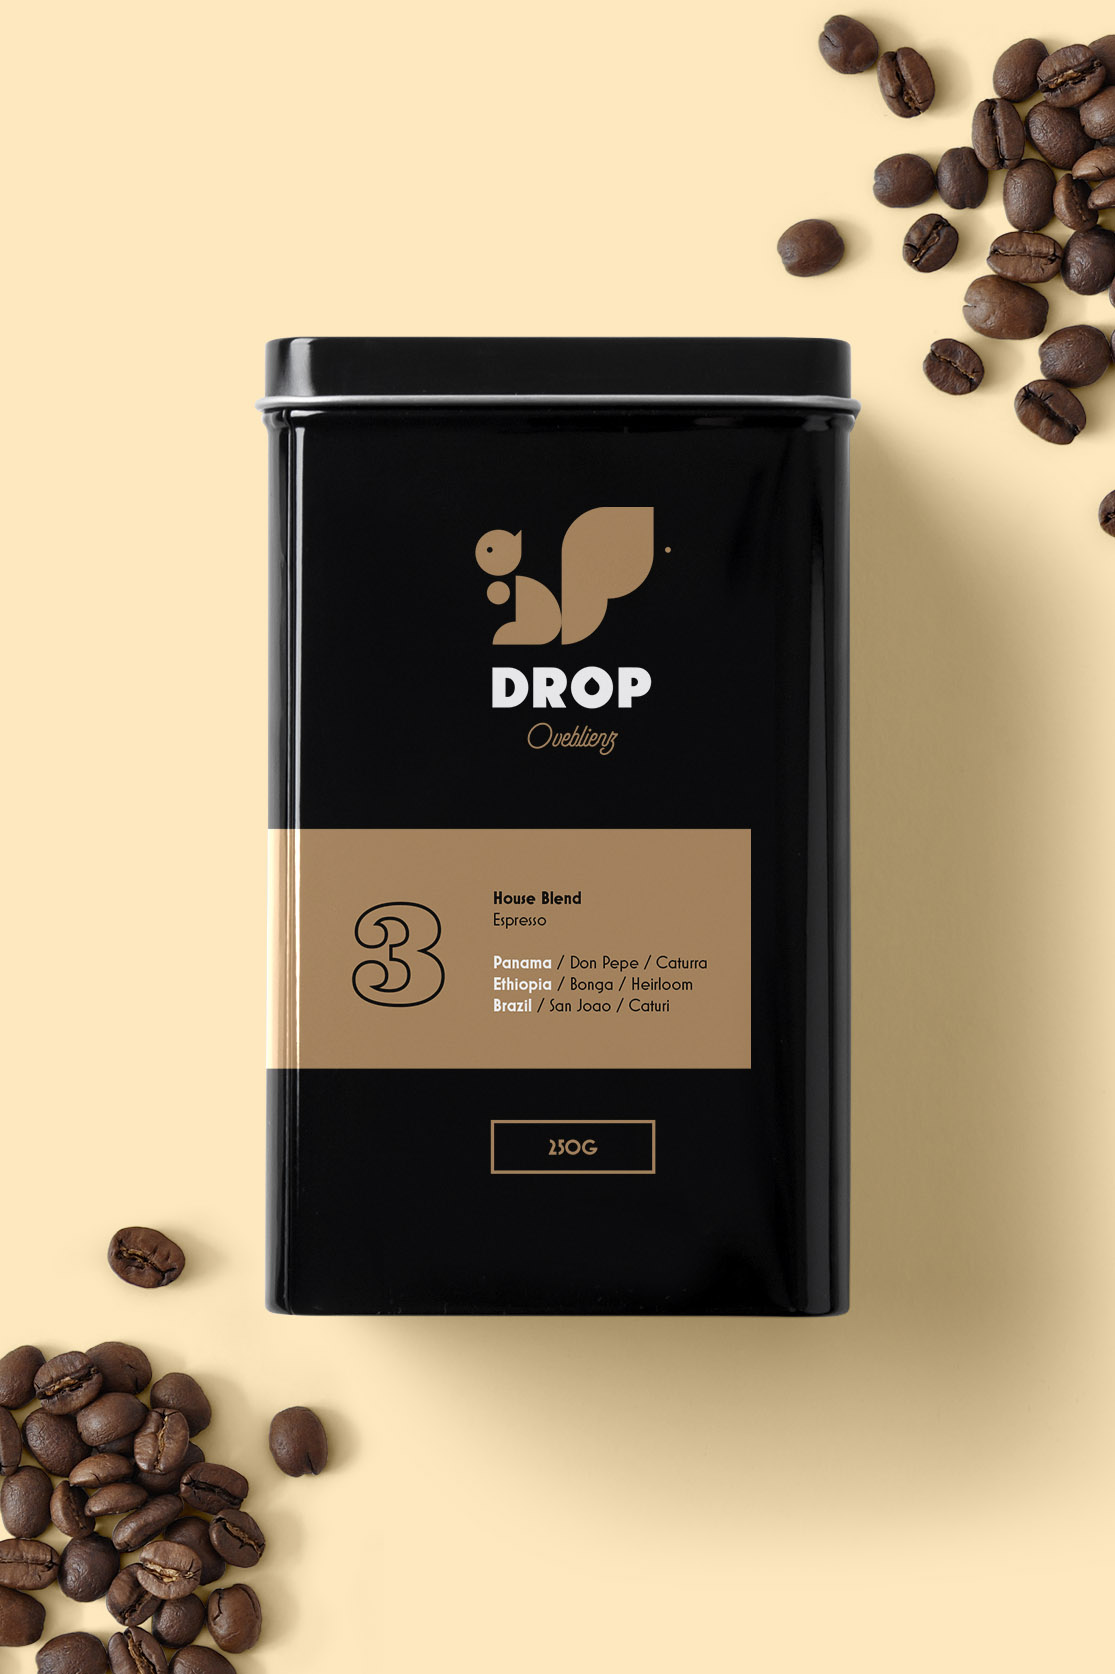 enamel box for coffee beans - graphic branding design for drop coffee roasters